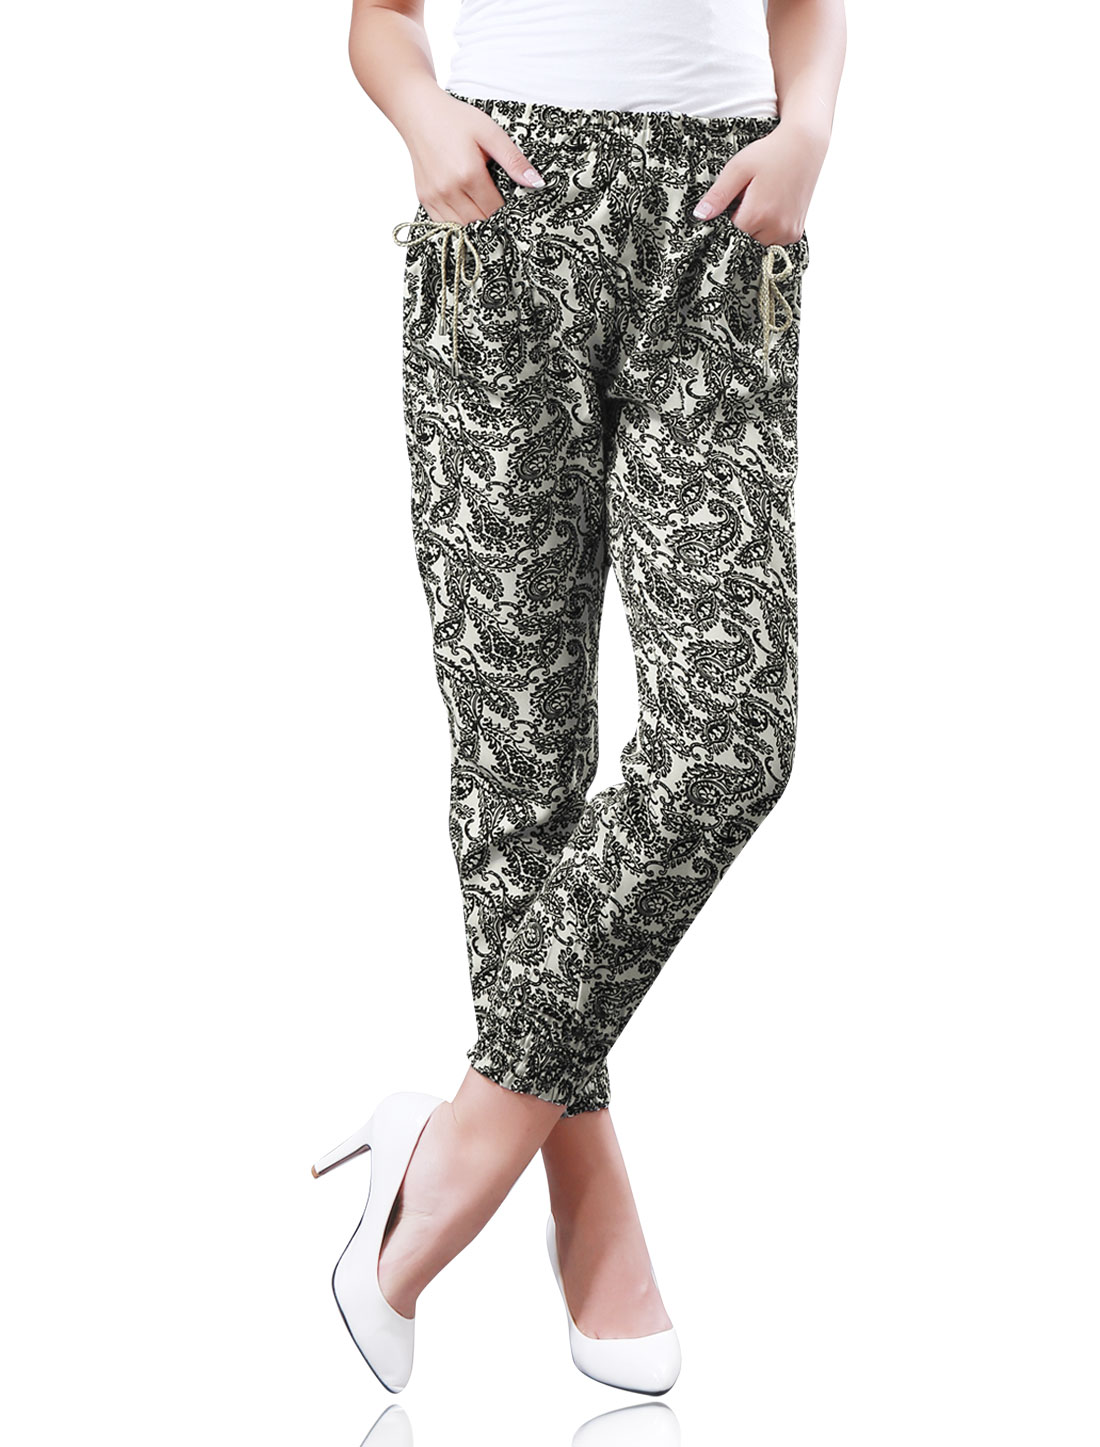 All-over Floral Paisleys Print Stretch Waist Jogger Pants for Woman Black Beige S